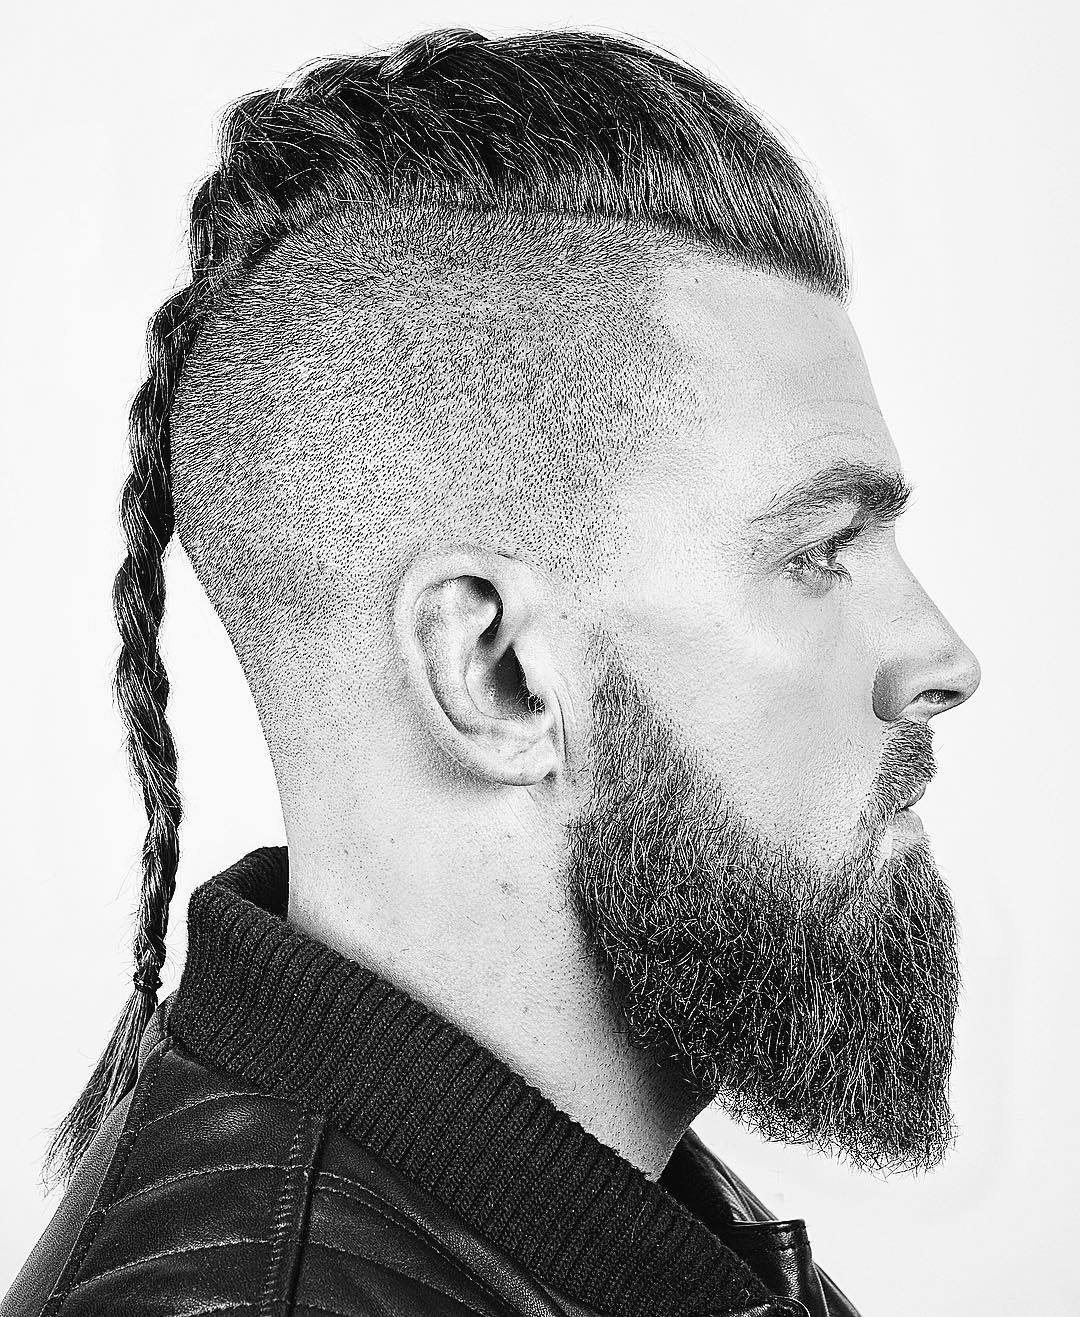 Man with viking braid and bald undercut with beard